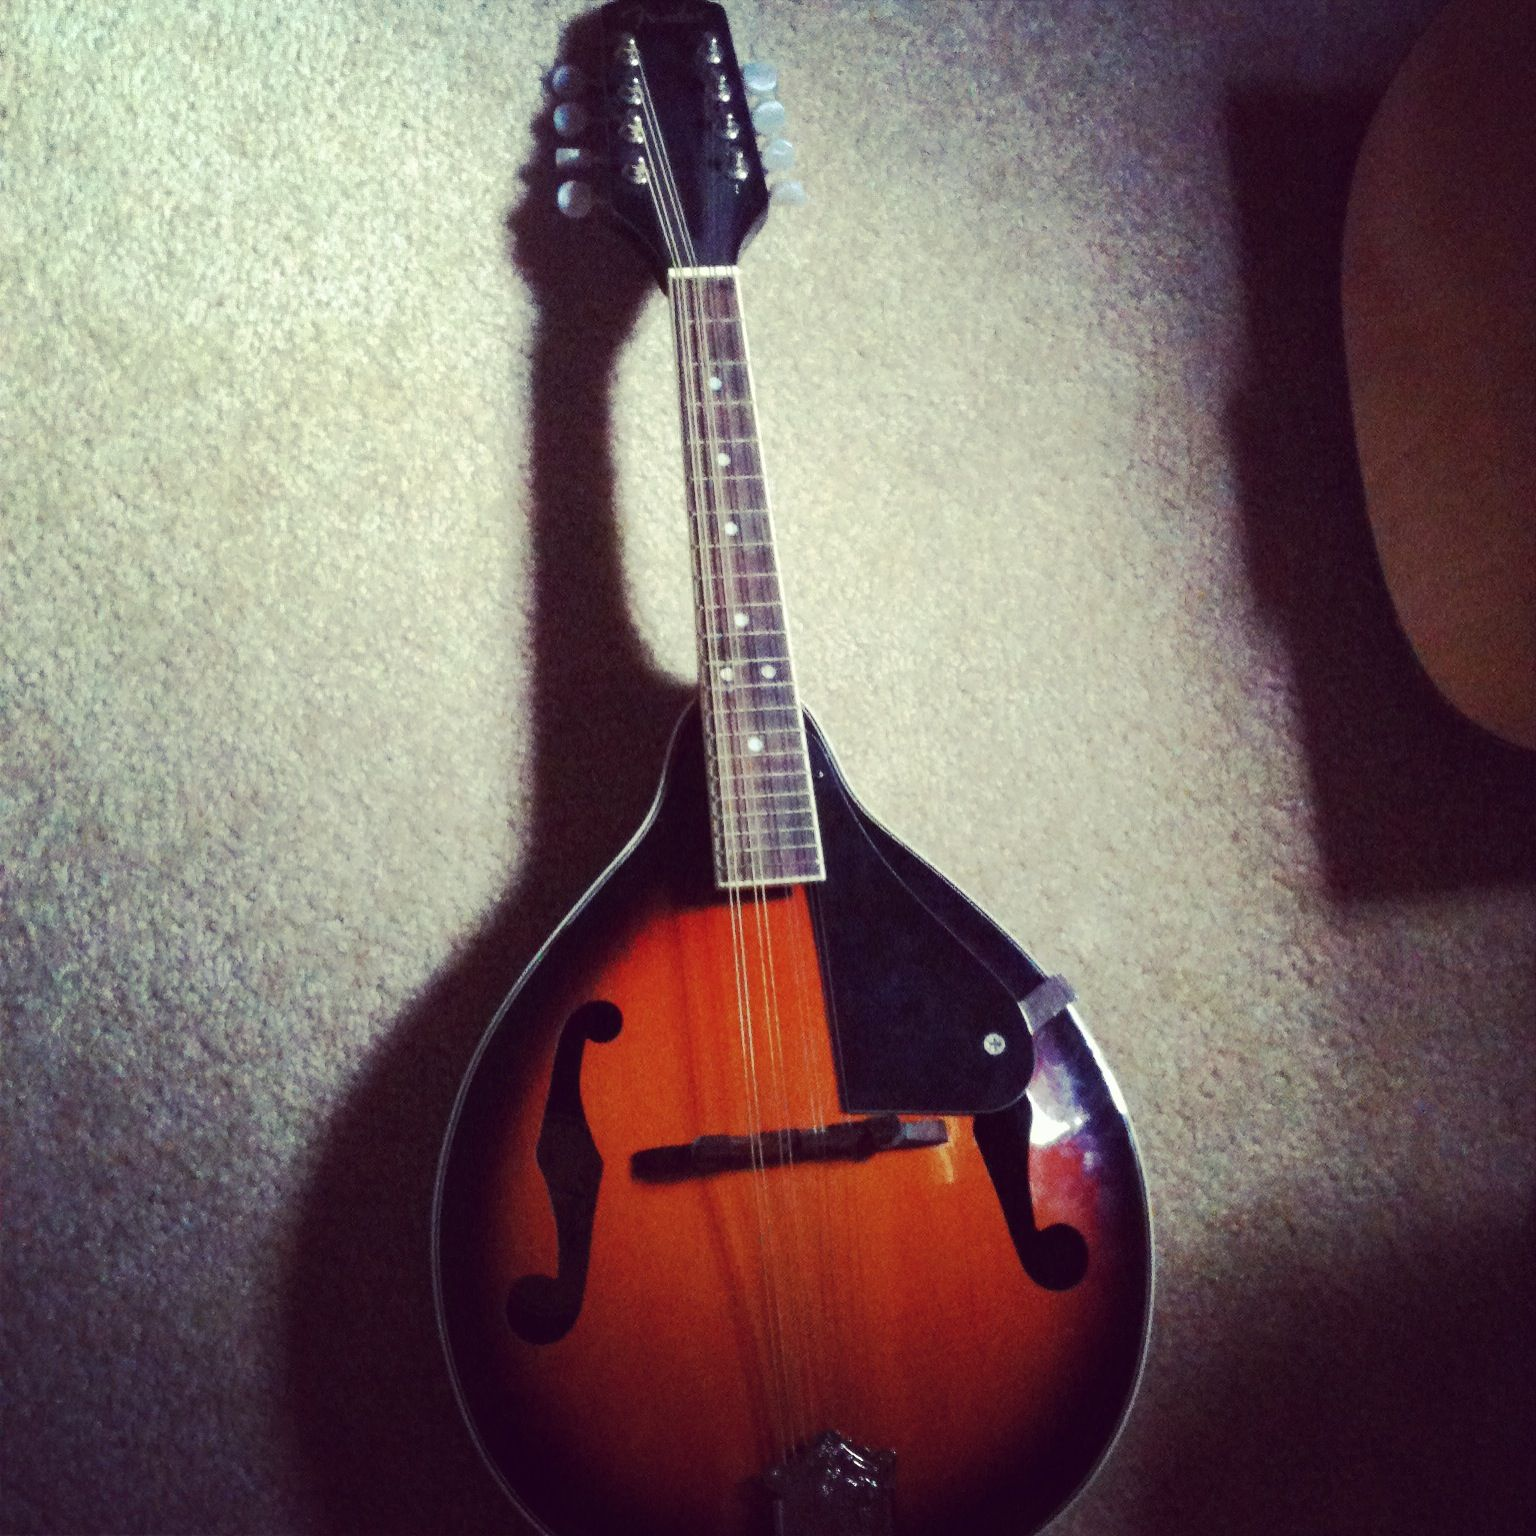 Mandolin 3 so cute and small music instruments guitar small